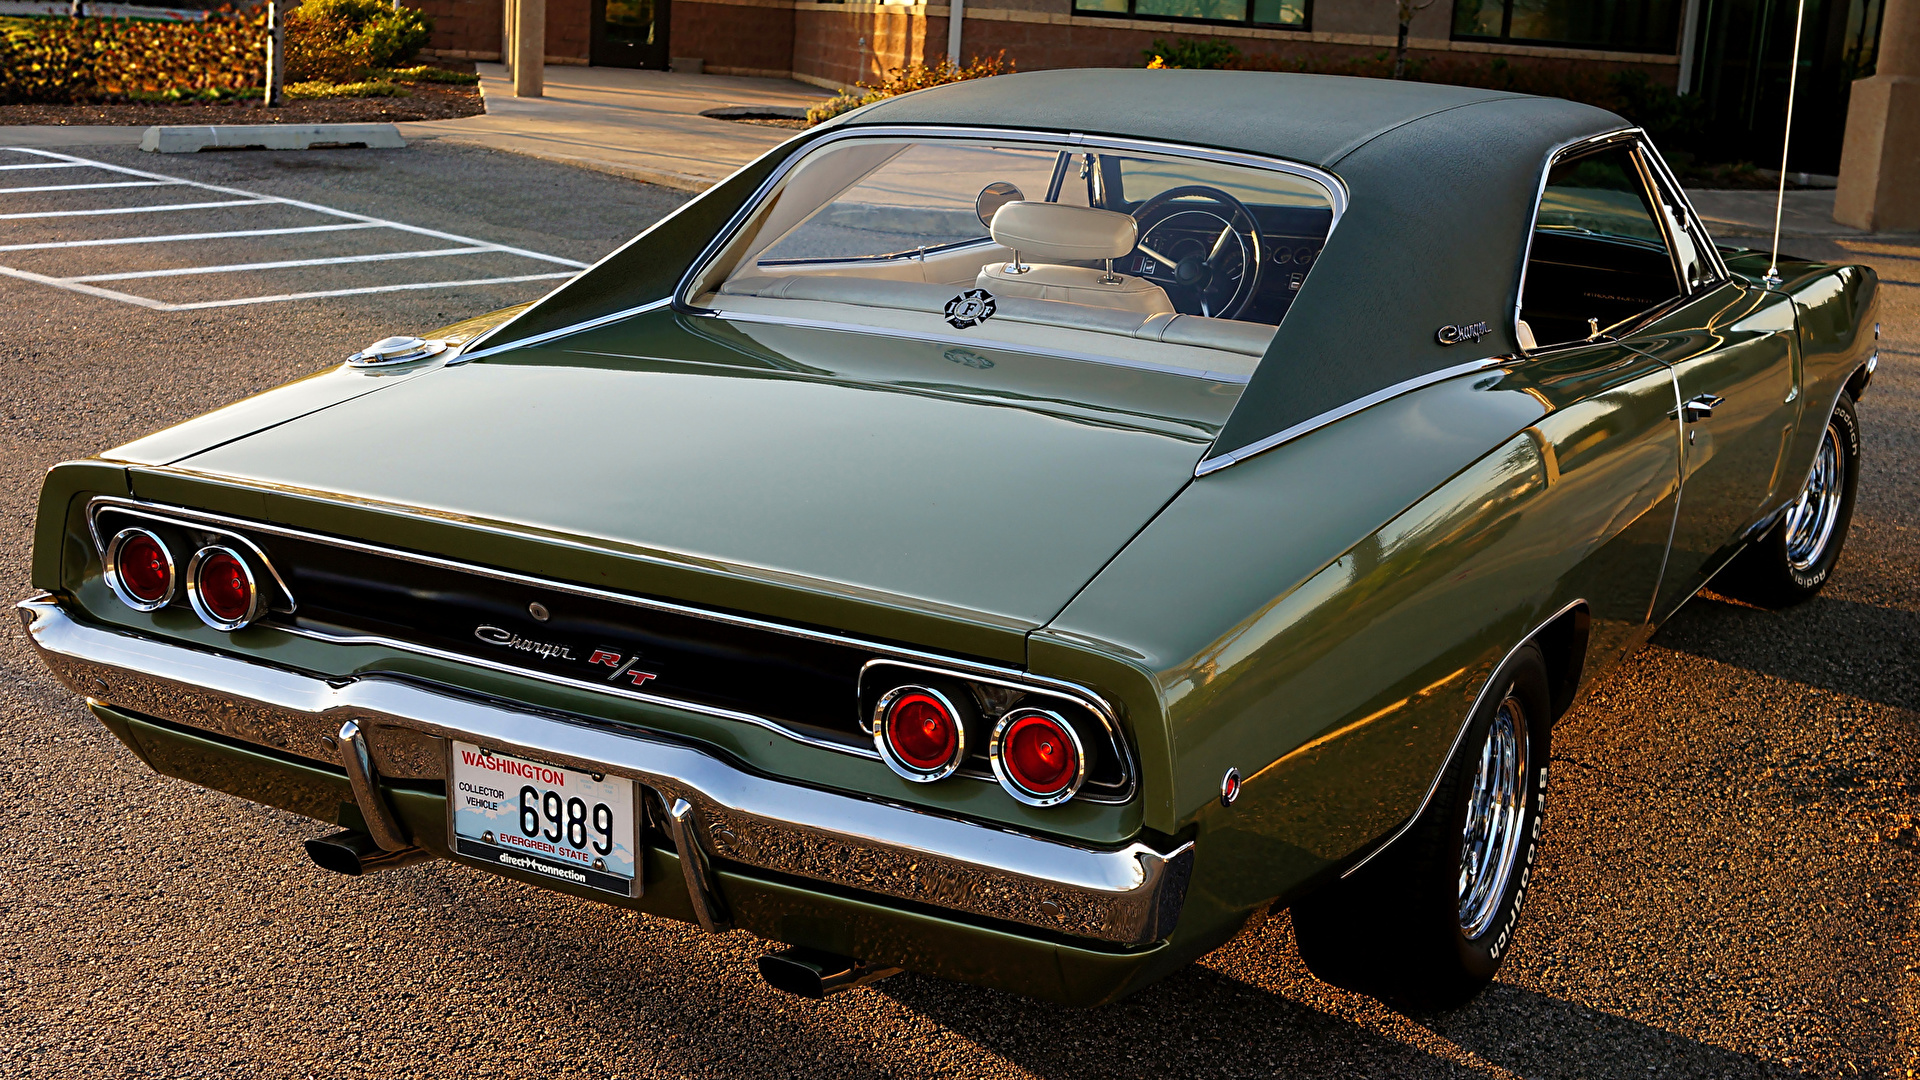 Photo Dodge Charger 1968 Green Antique Auto Back View 1920x1080